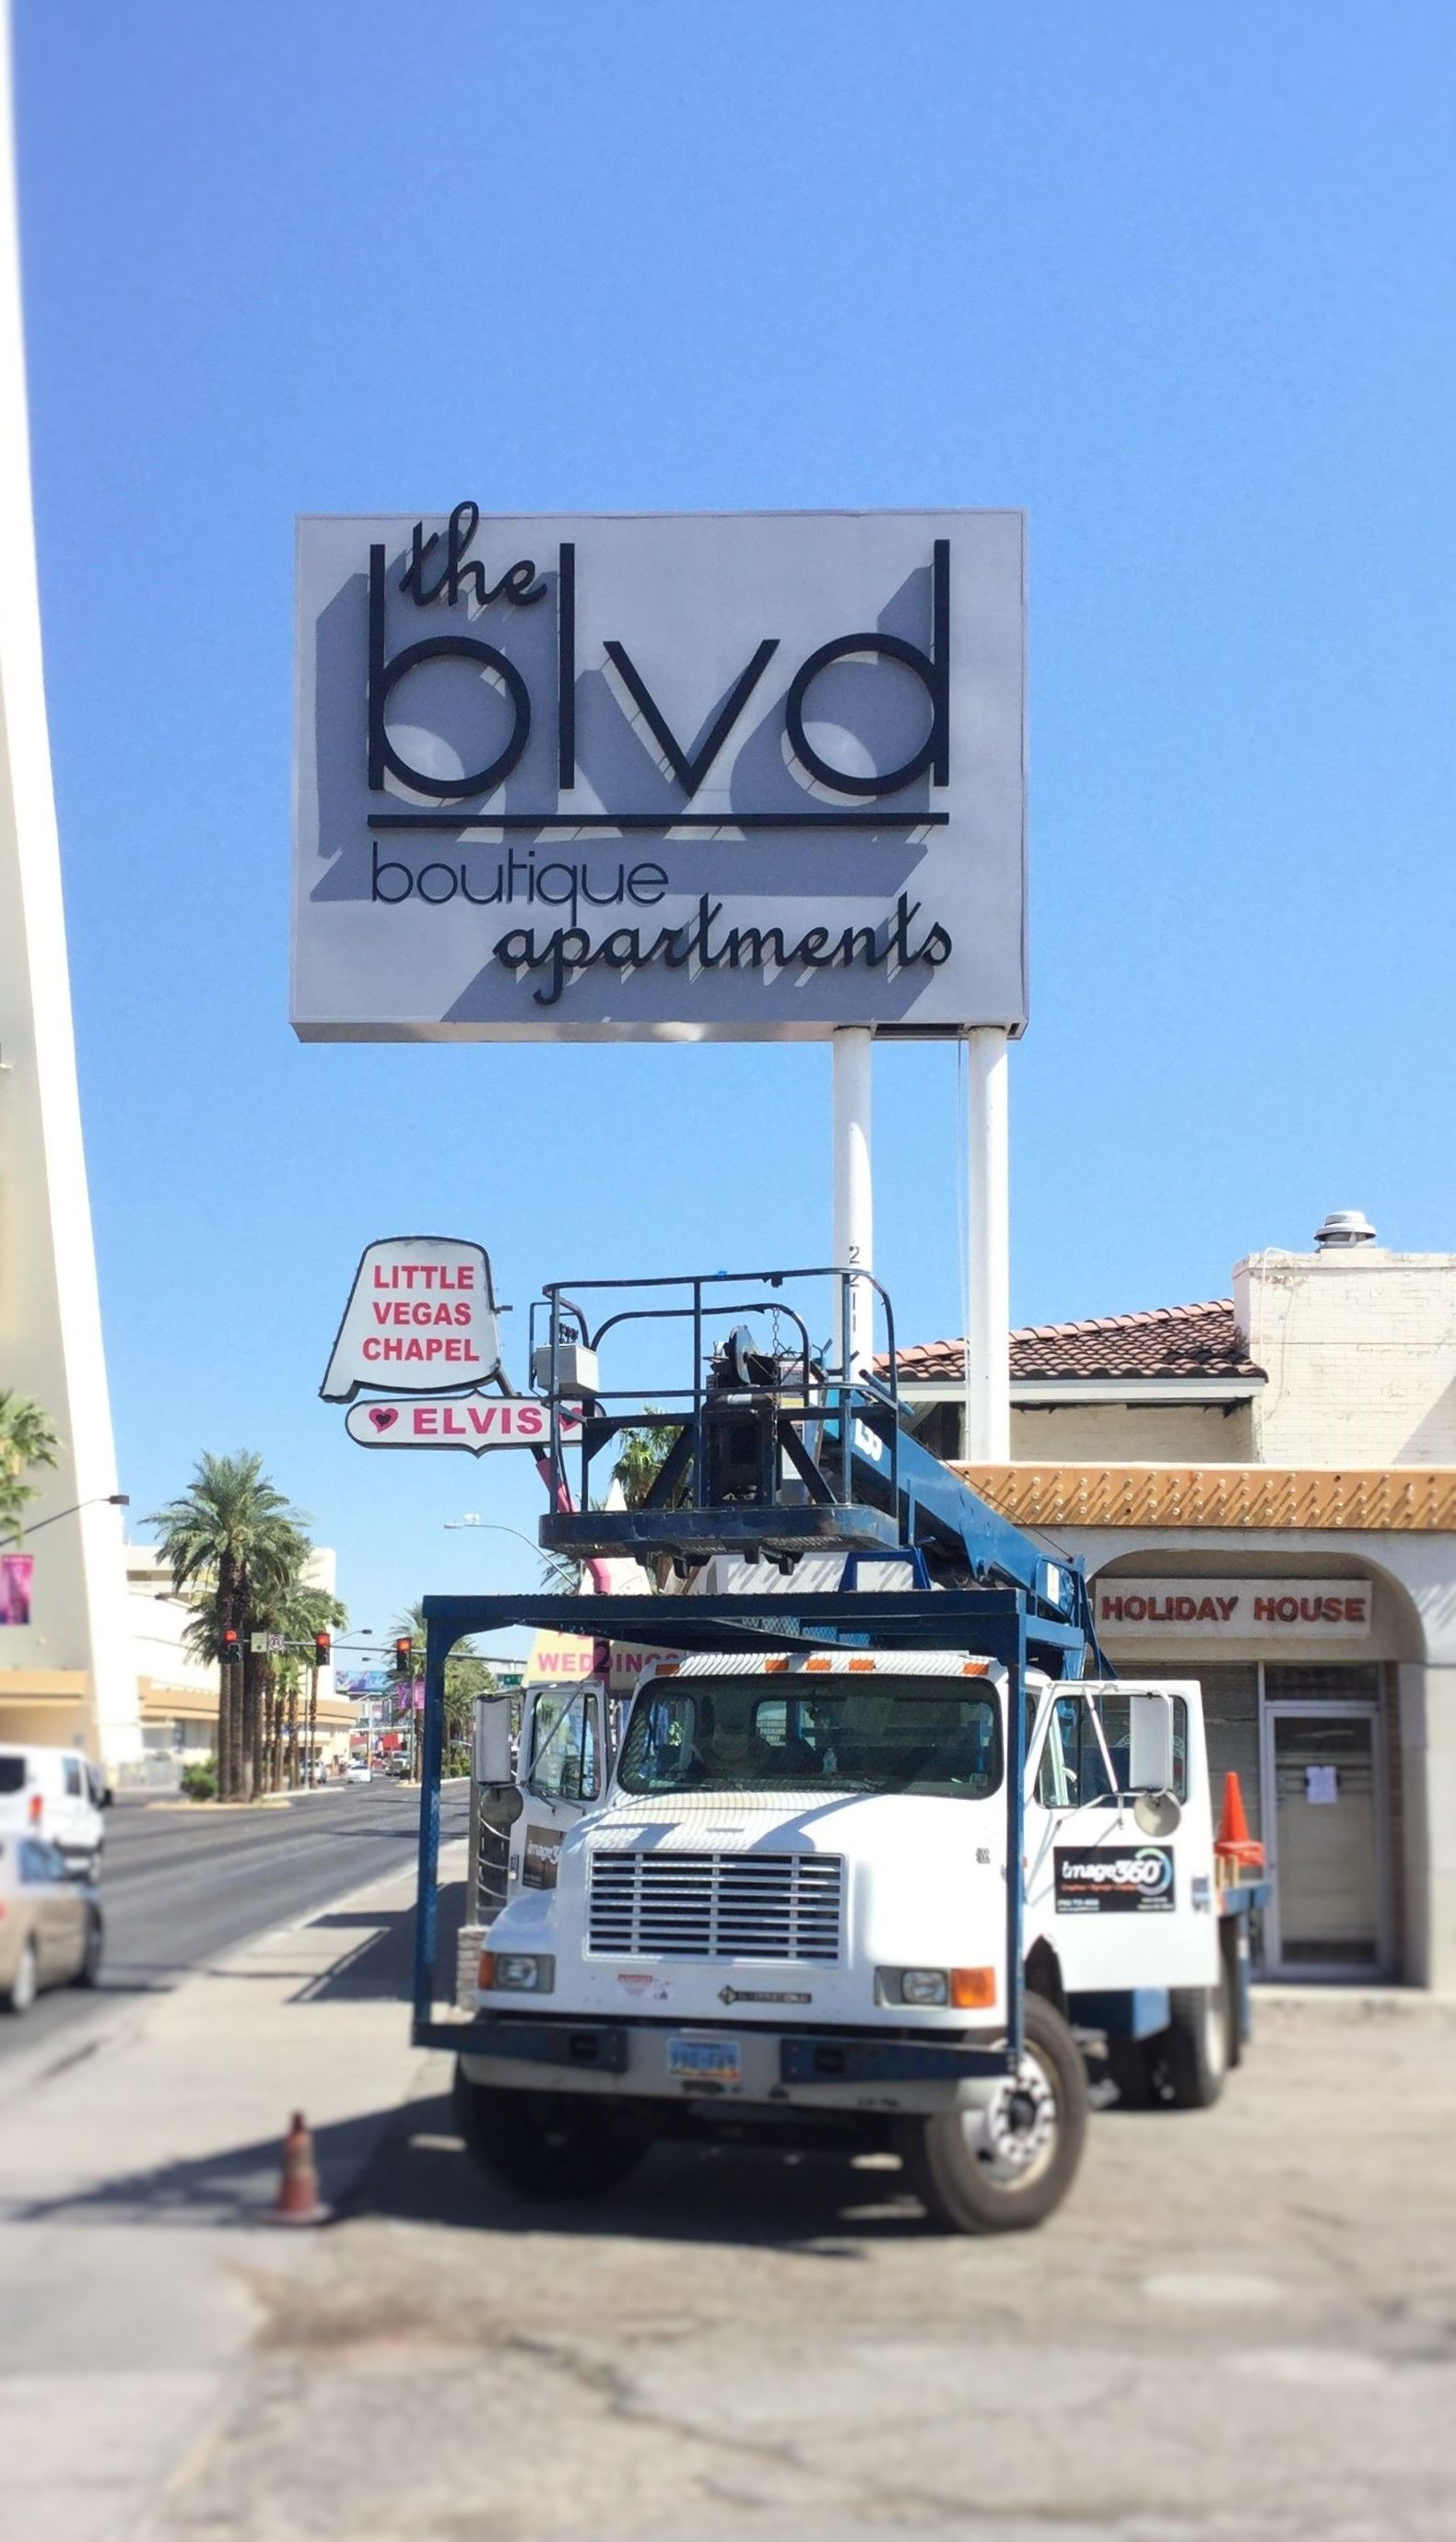 Exterior & Outdoor Signage | Pylon & Pole Signs | Property Management and Apartment Signs | Las Vegas